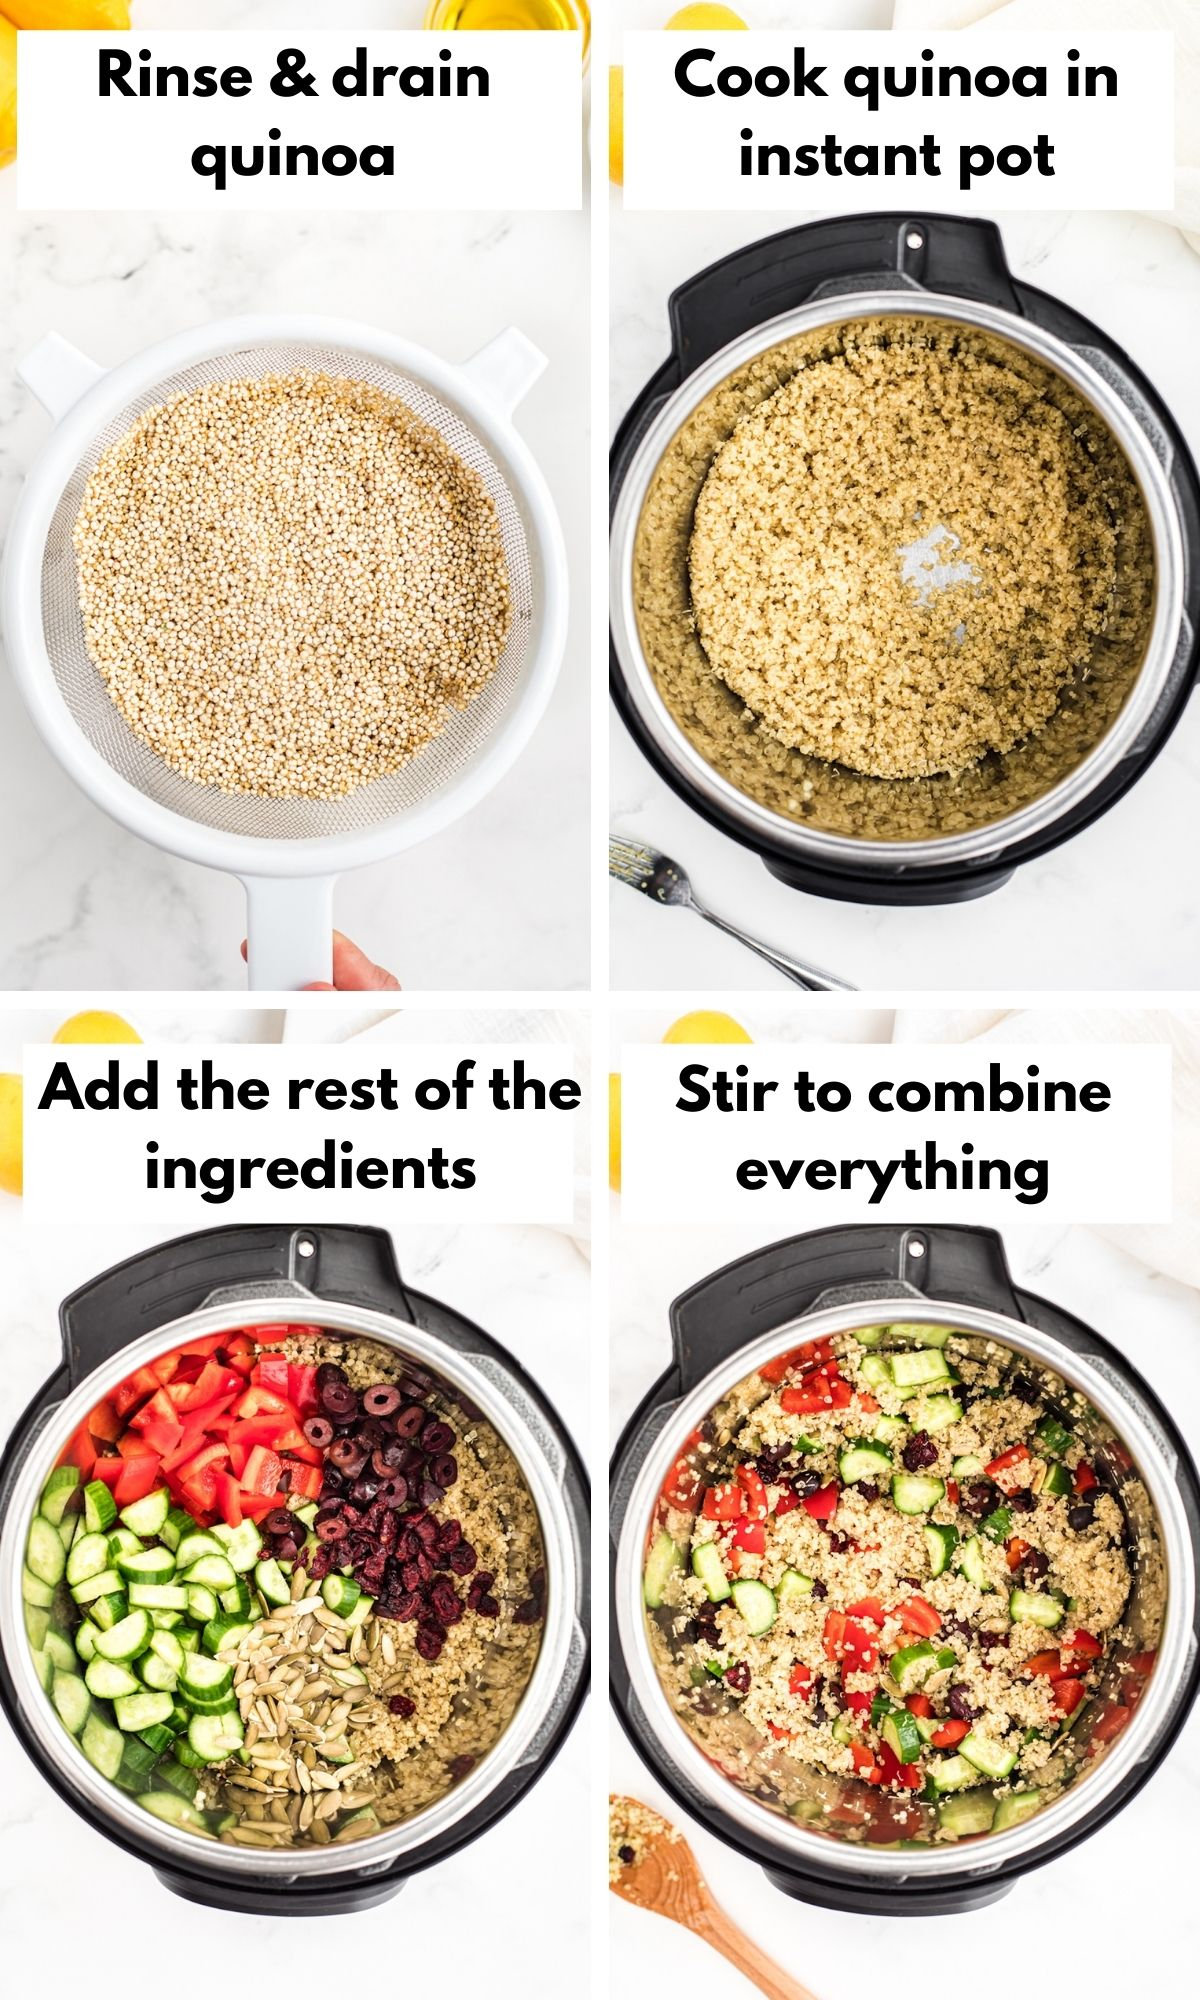 Pictures show how to make instant pot quinoa